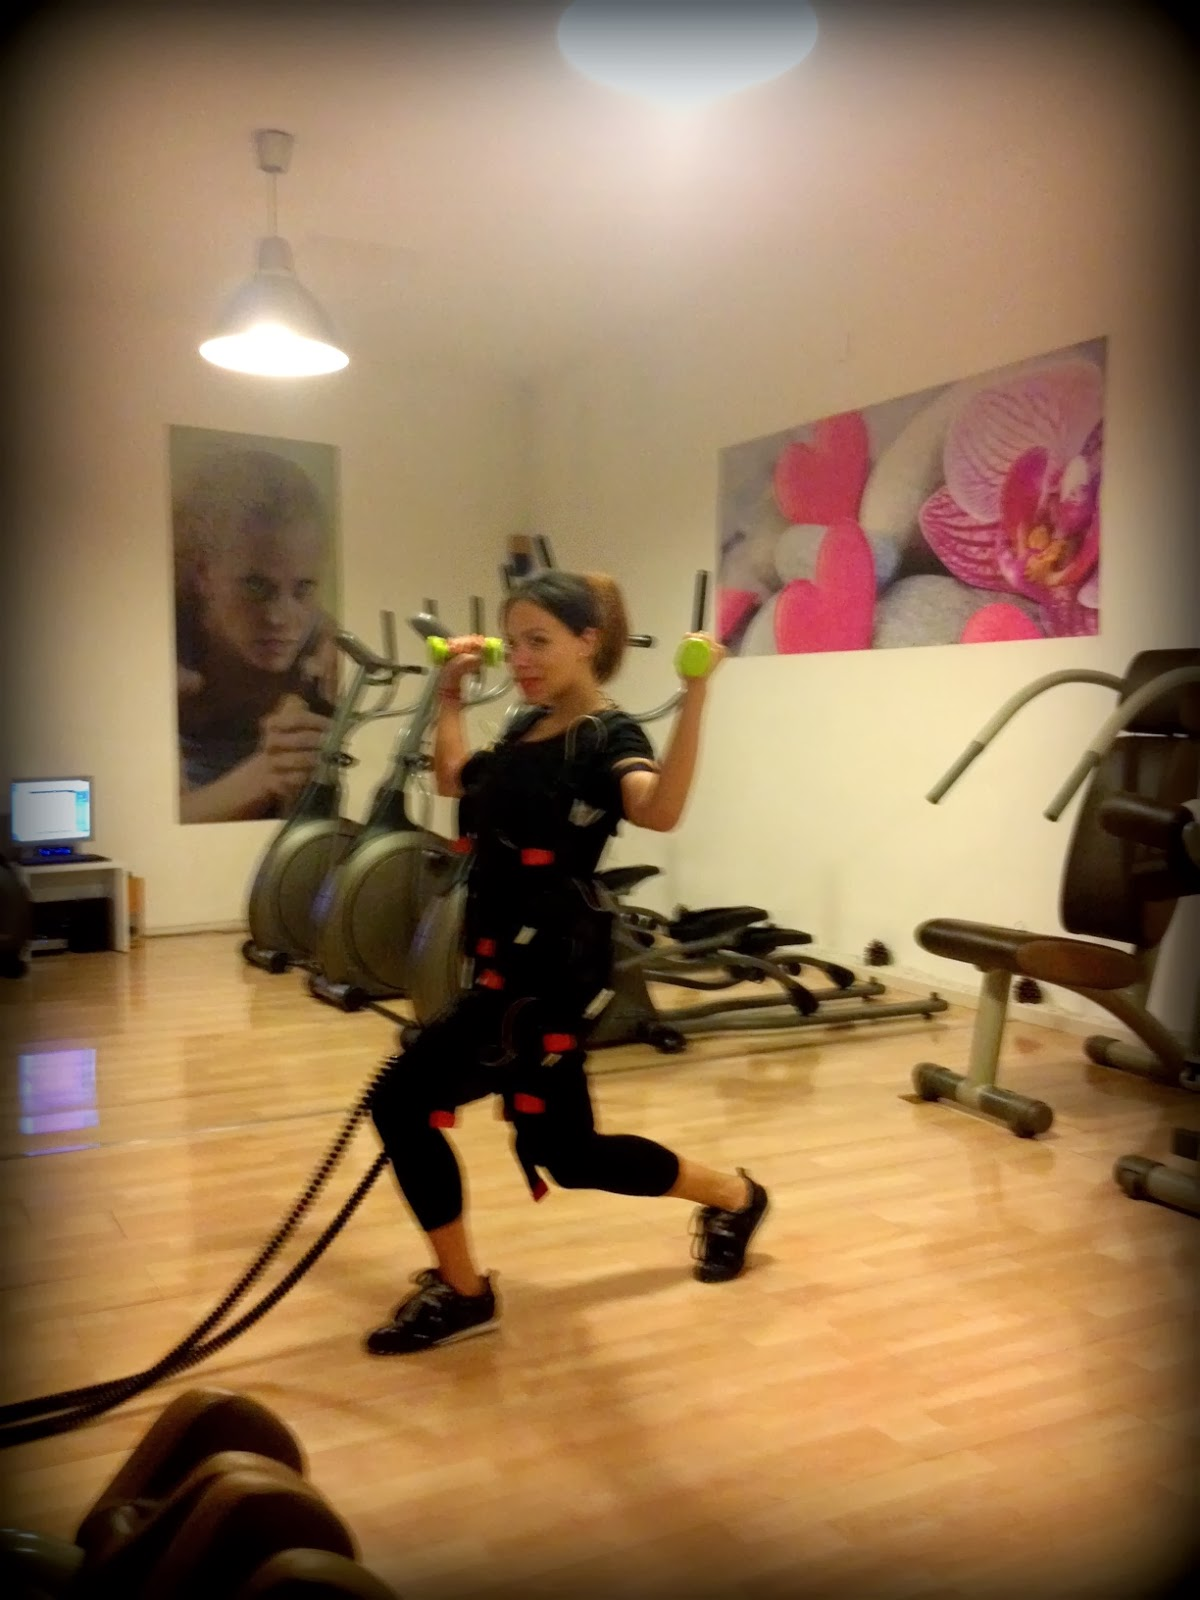 Angie r belleza electroestimulaci n time for beauty for Gimnasio femenino